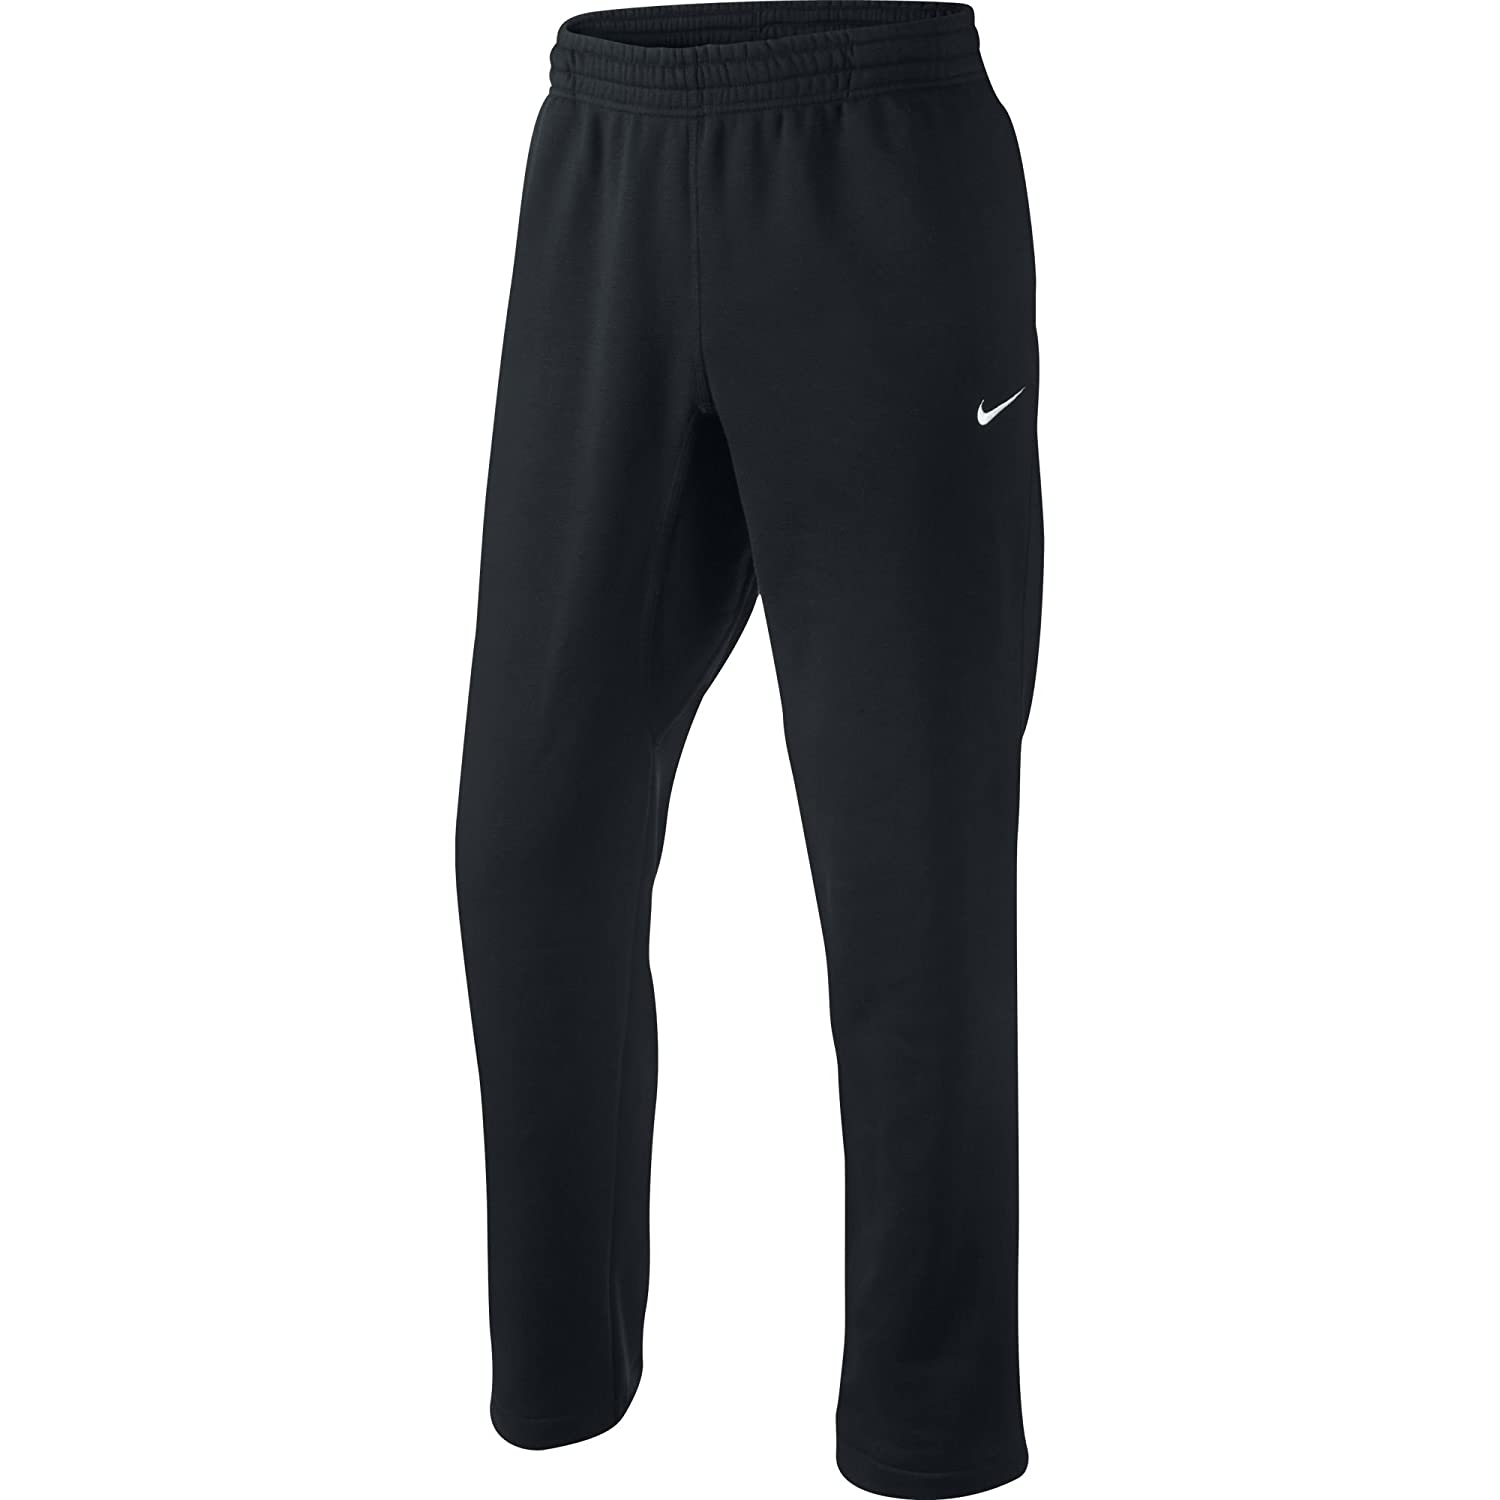 mens fleece pants - Pi Pants